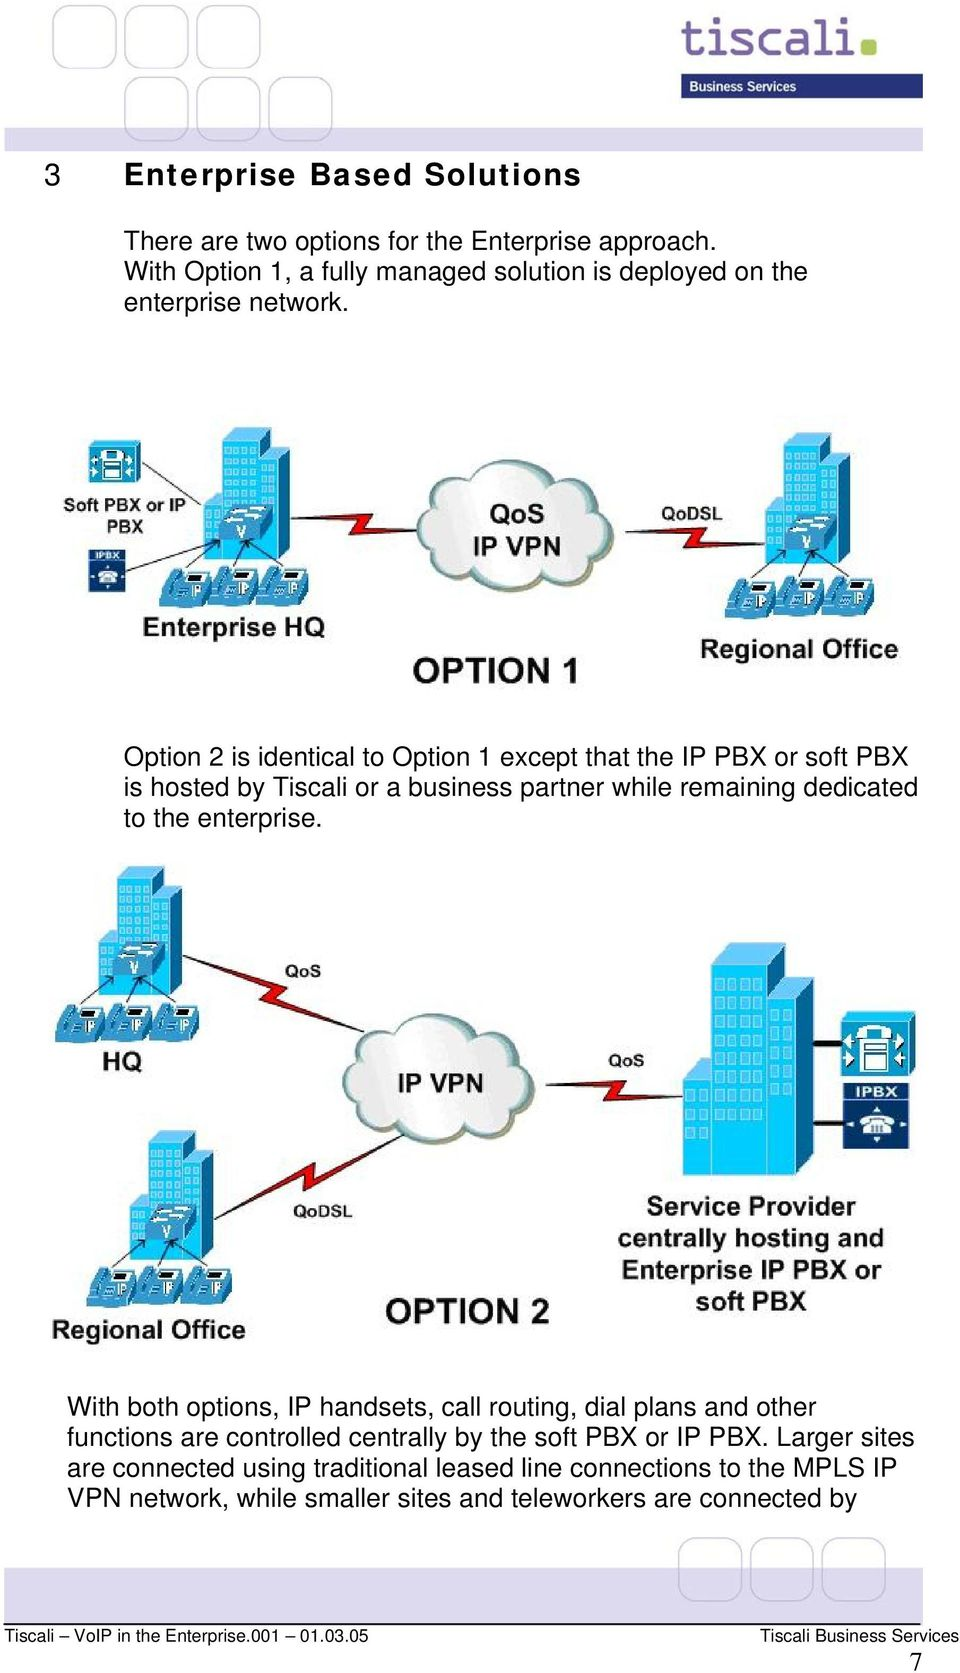 Option 2 is identical to Option 1 except that the IP PBX or soft PBX is hosted by Tiscali or a business partner while remaining dedicated to the